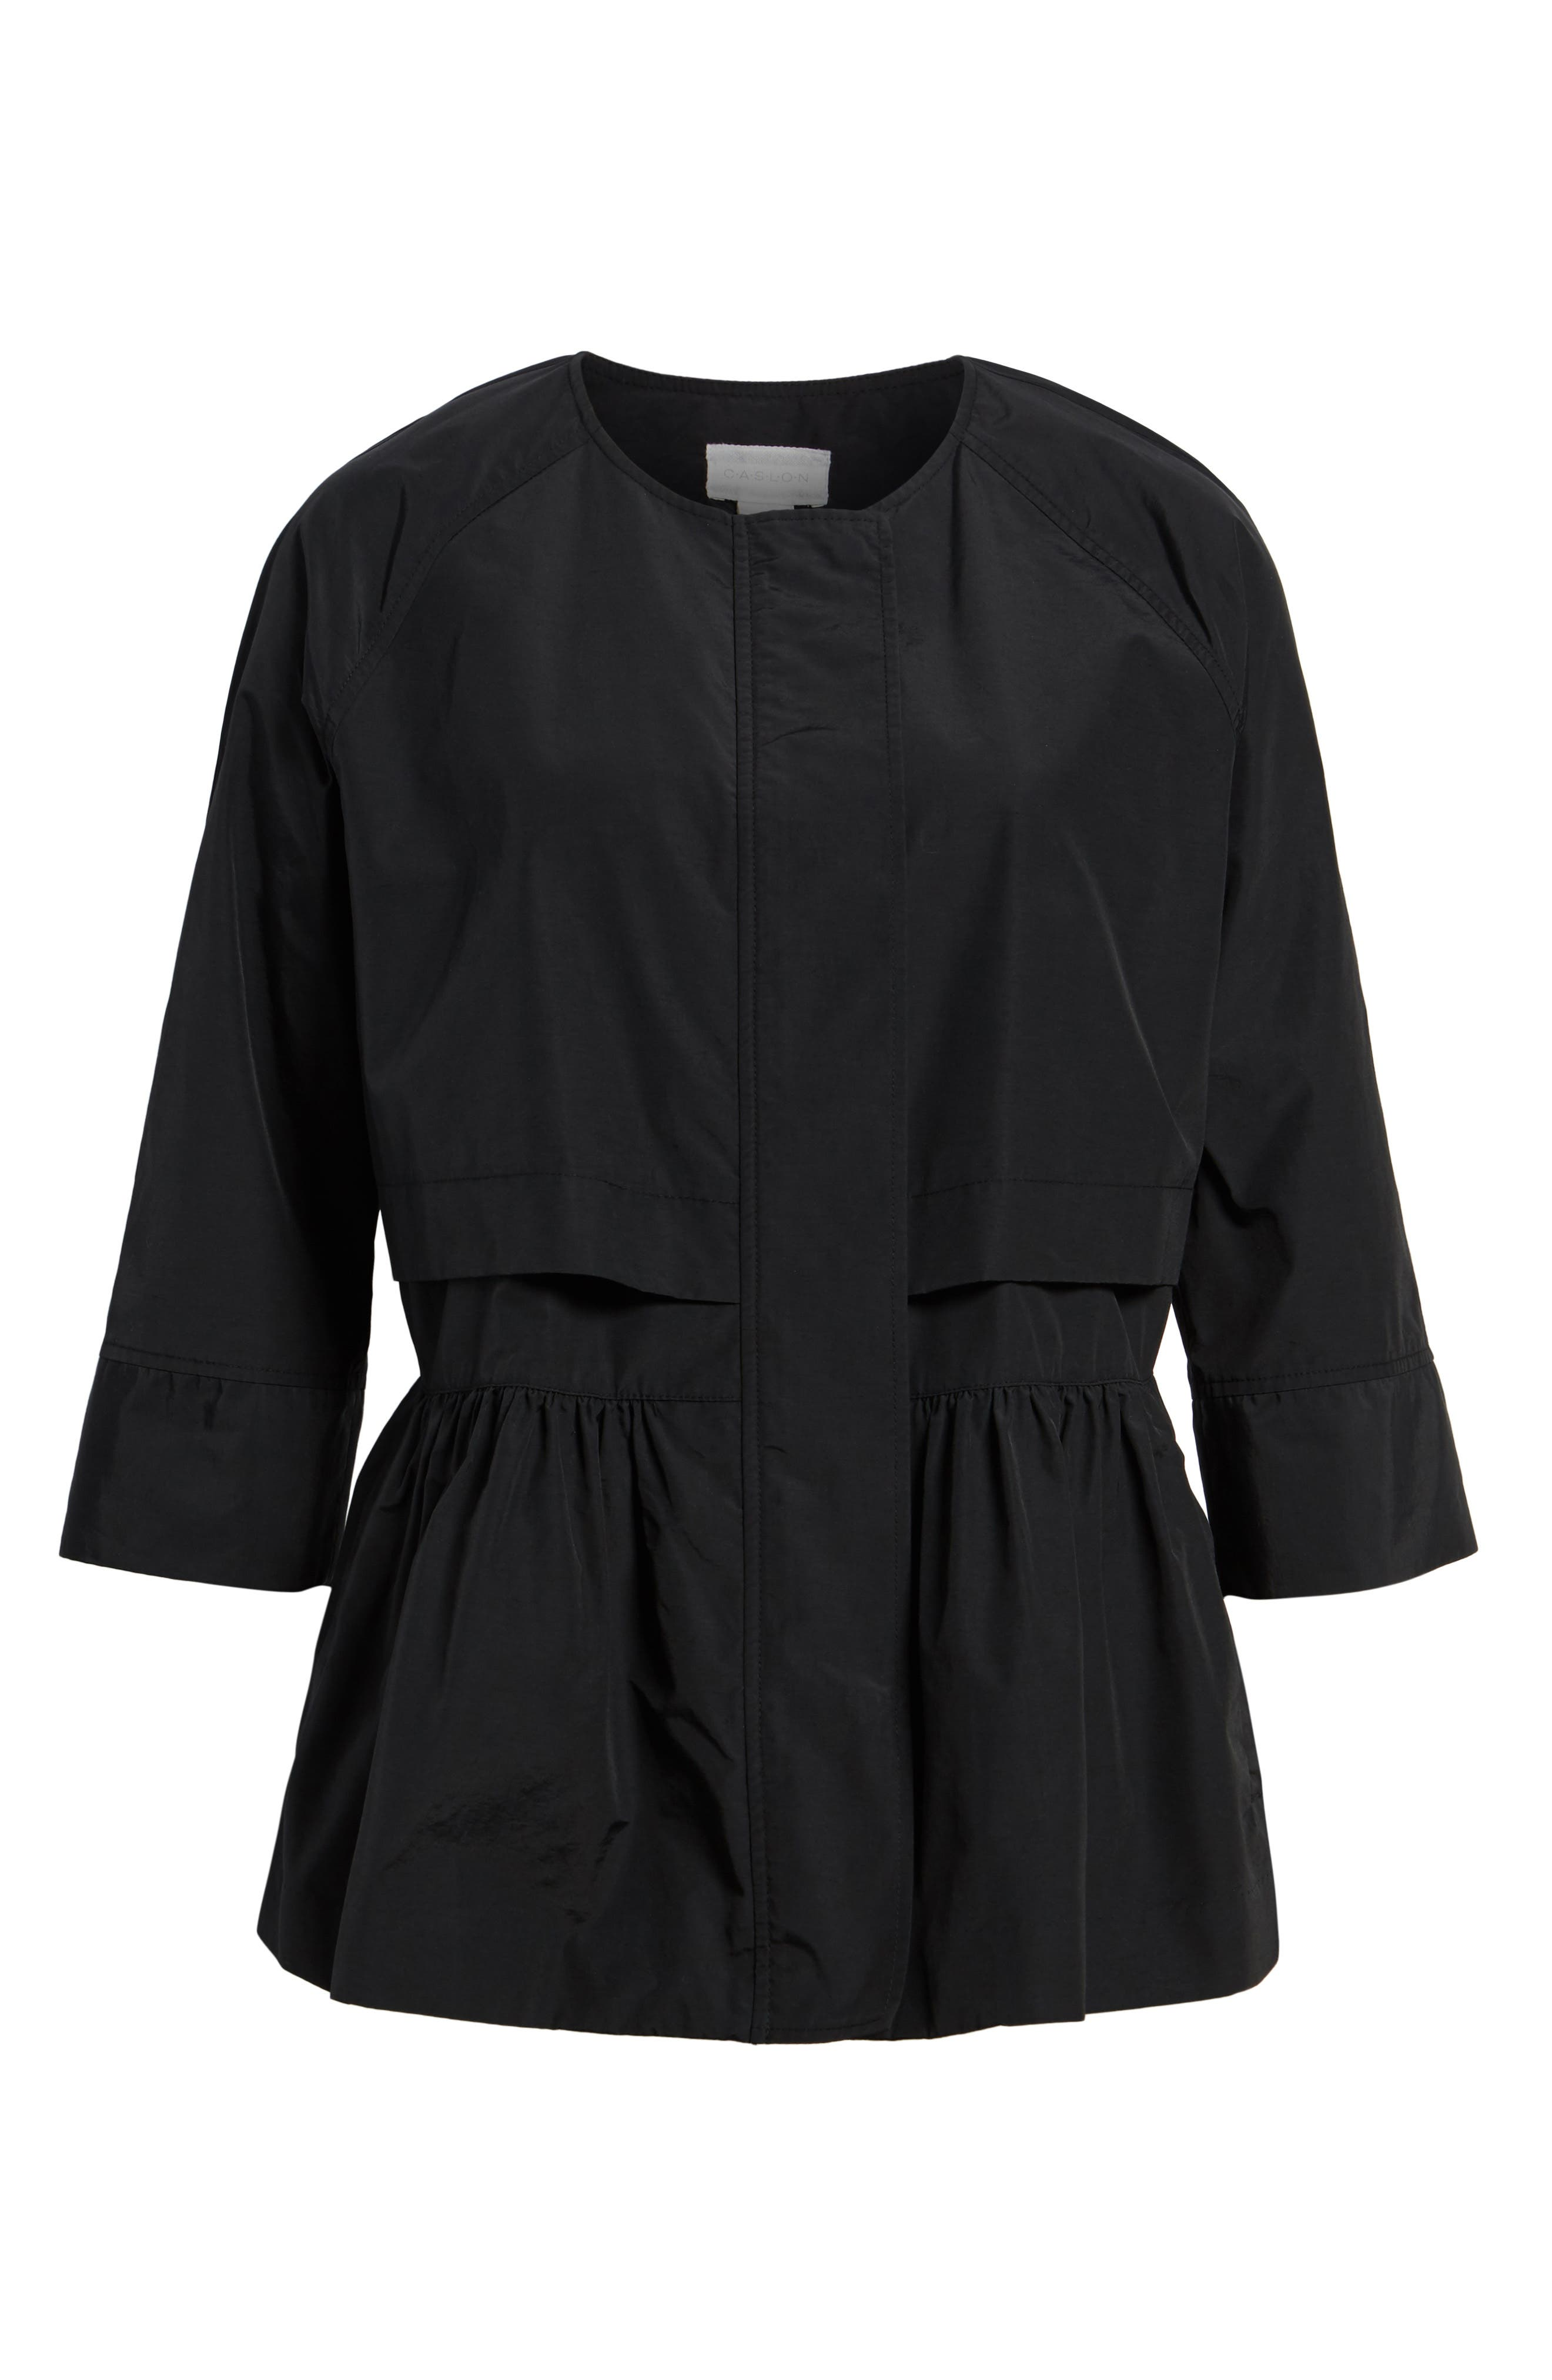 Peplum Cotton Blend Utility Jacket,                             Alternate thumbnail 7, color,                             Black